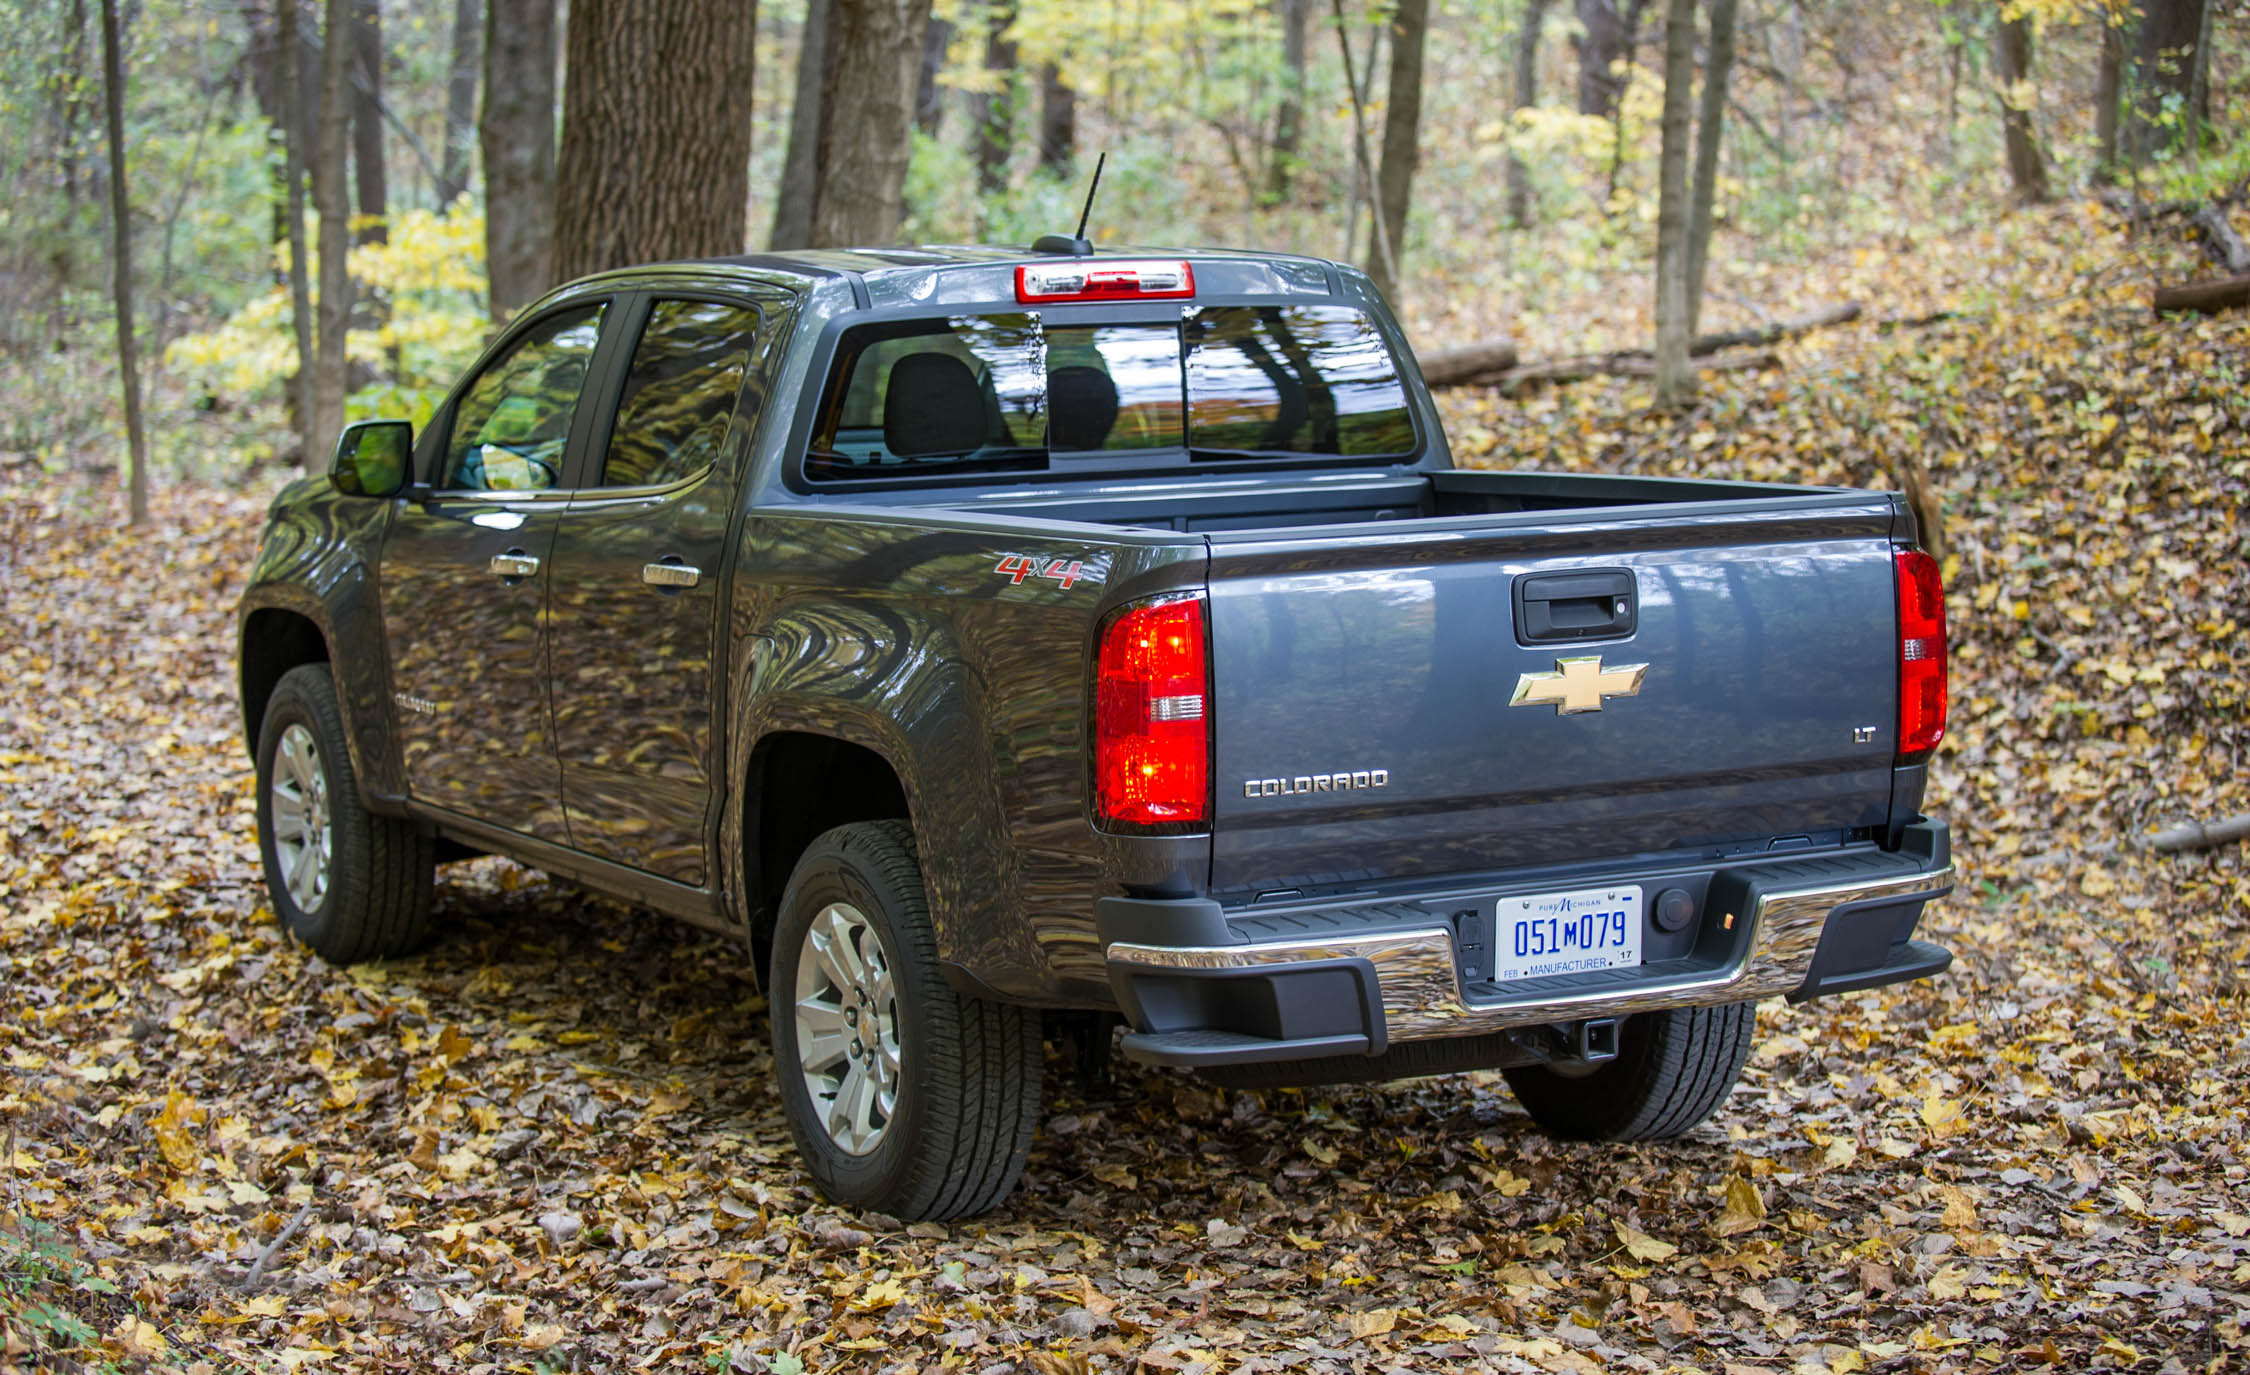 2017 Chevrolet Colorado Exterior Rear And Side (View 34 of 41)